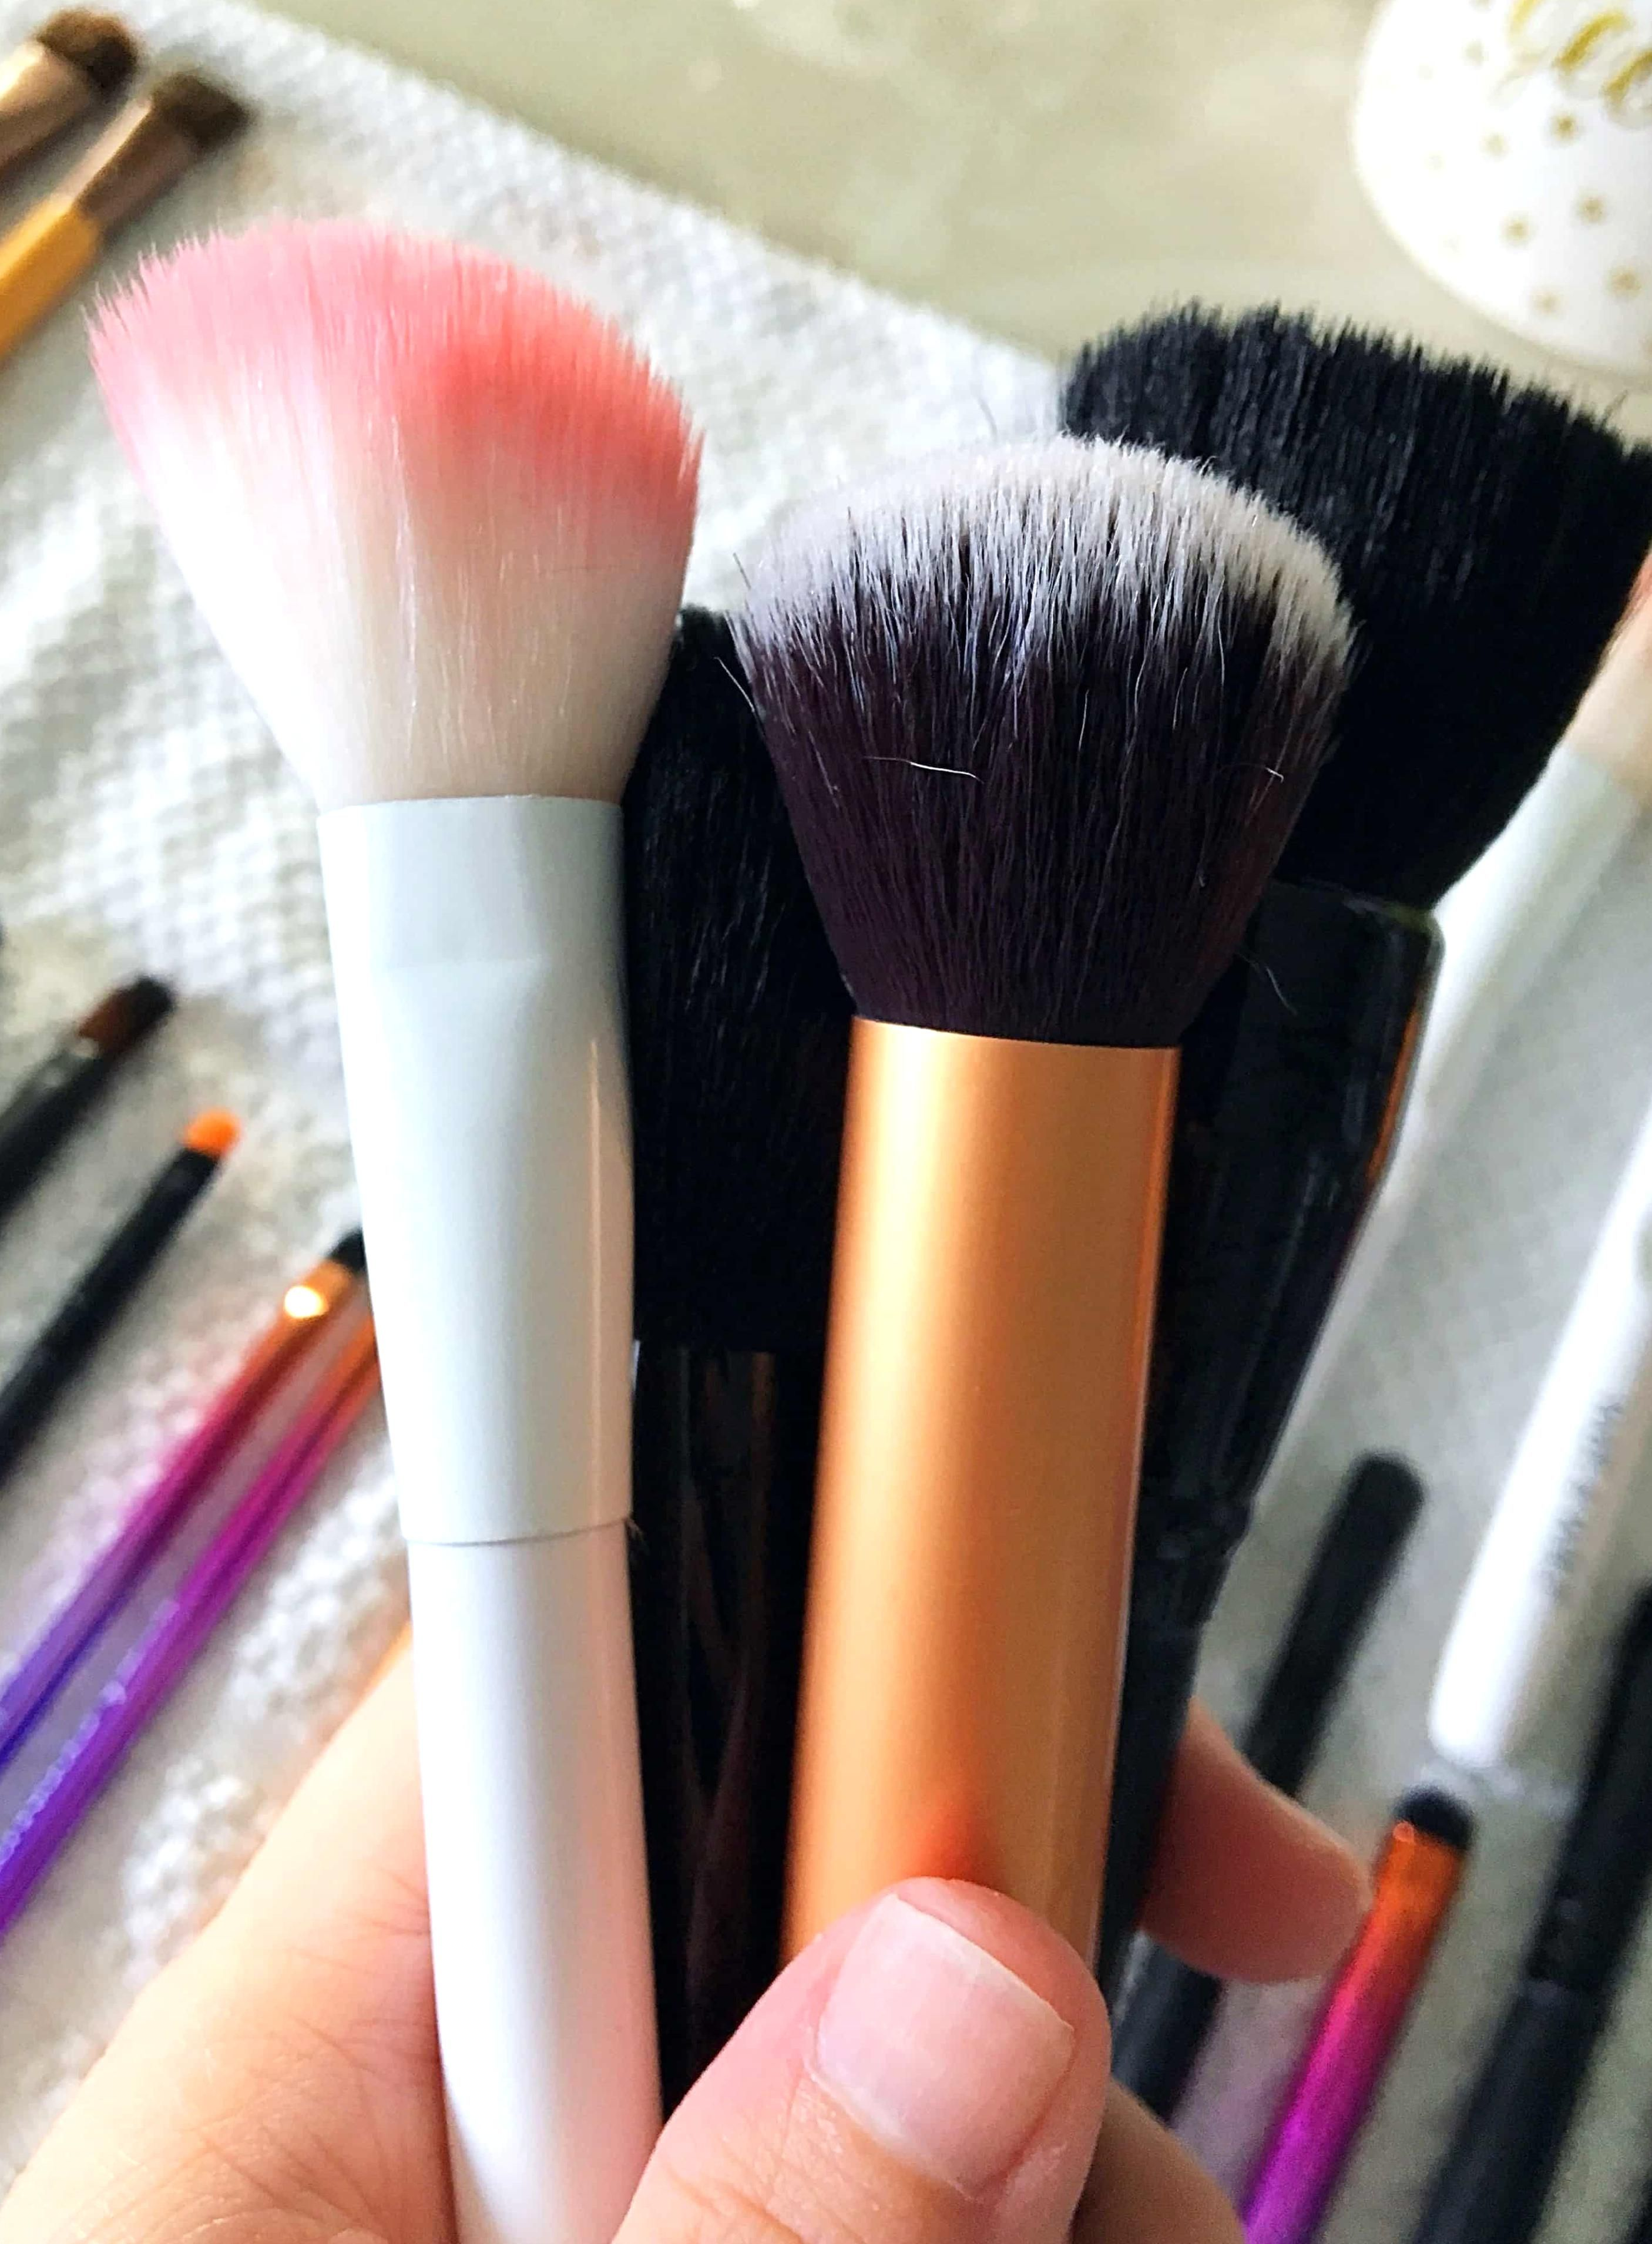 Want to know how to best clean your makeup brushes at home